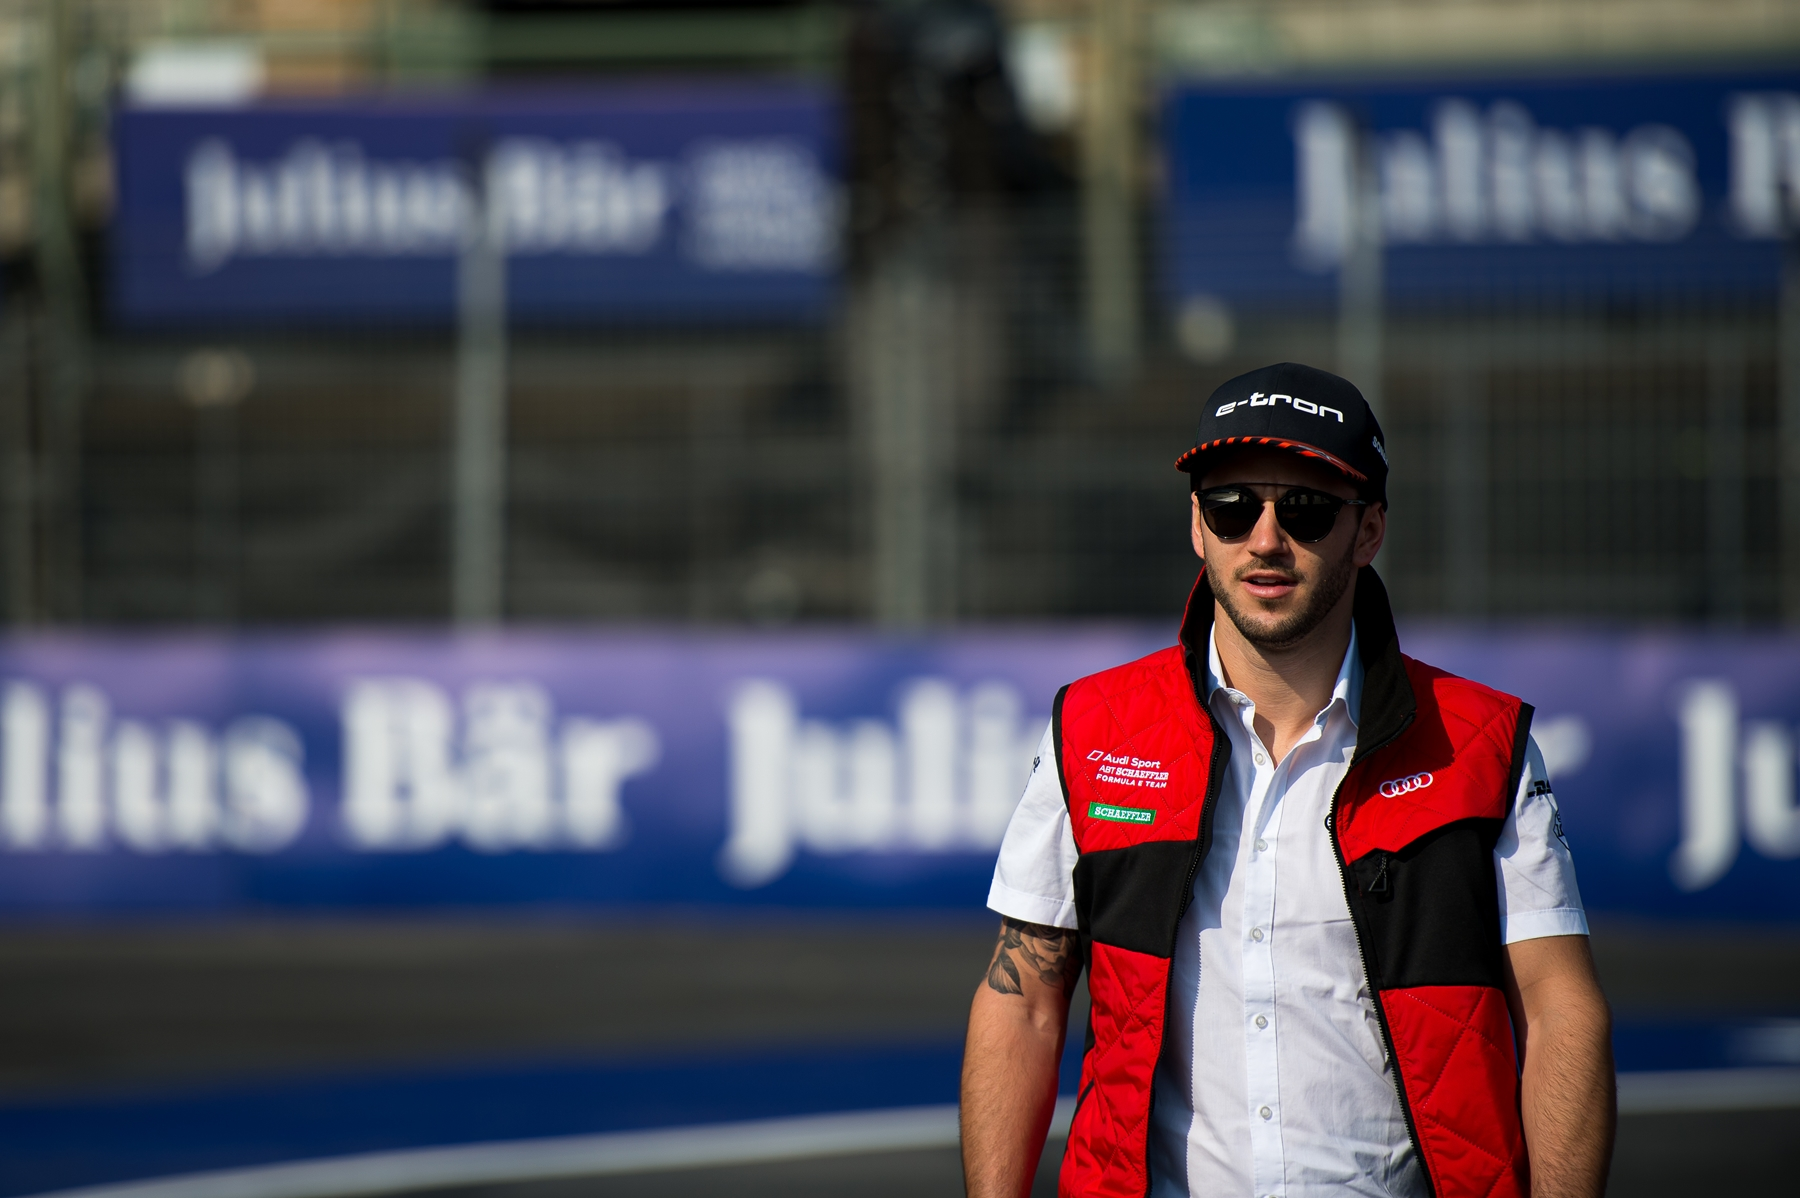 Daniel-Abt-Tattoo-Mexico-City-Trackwalk